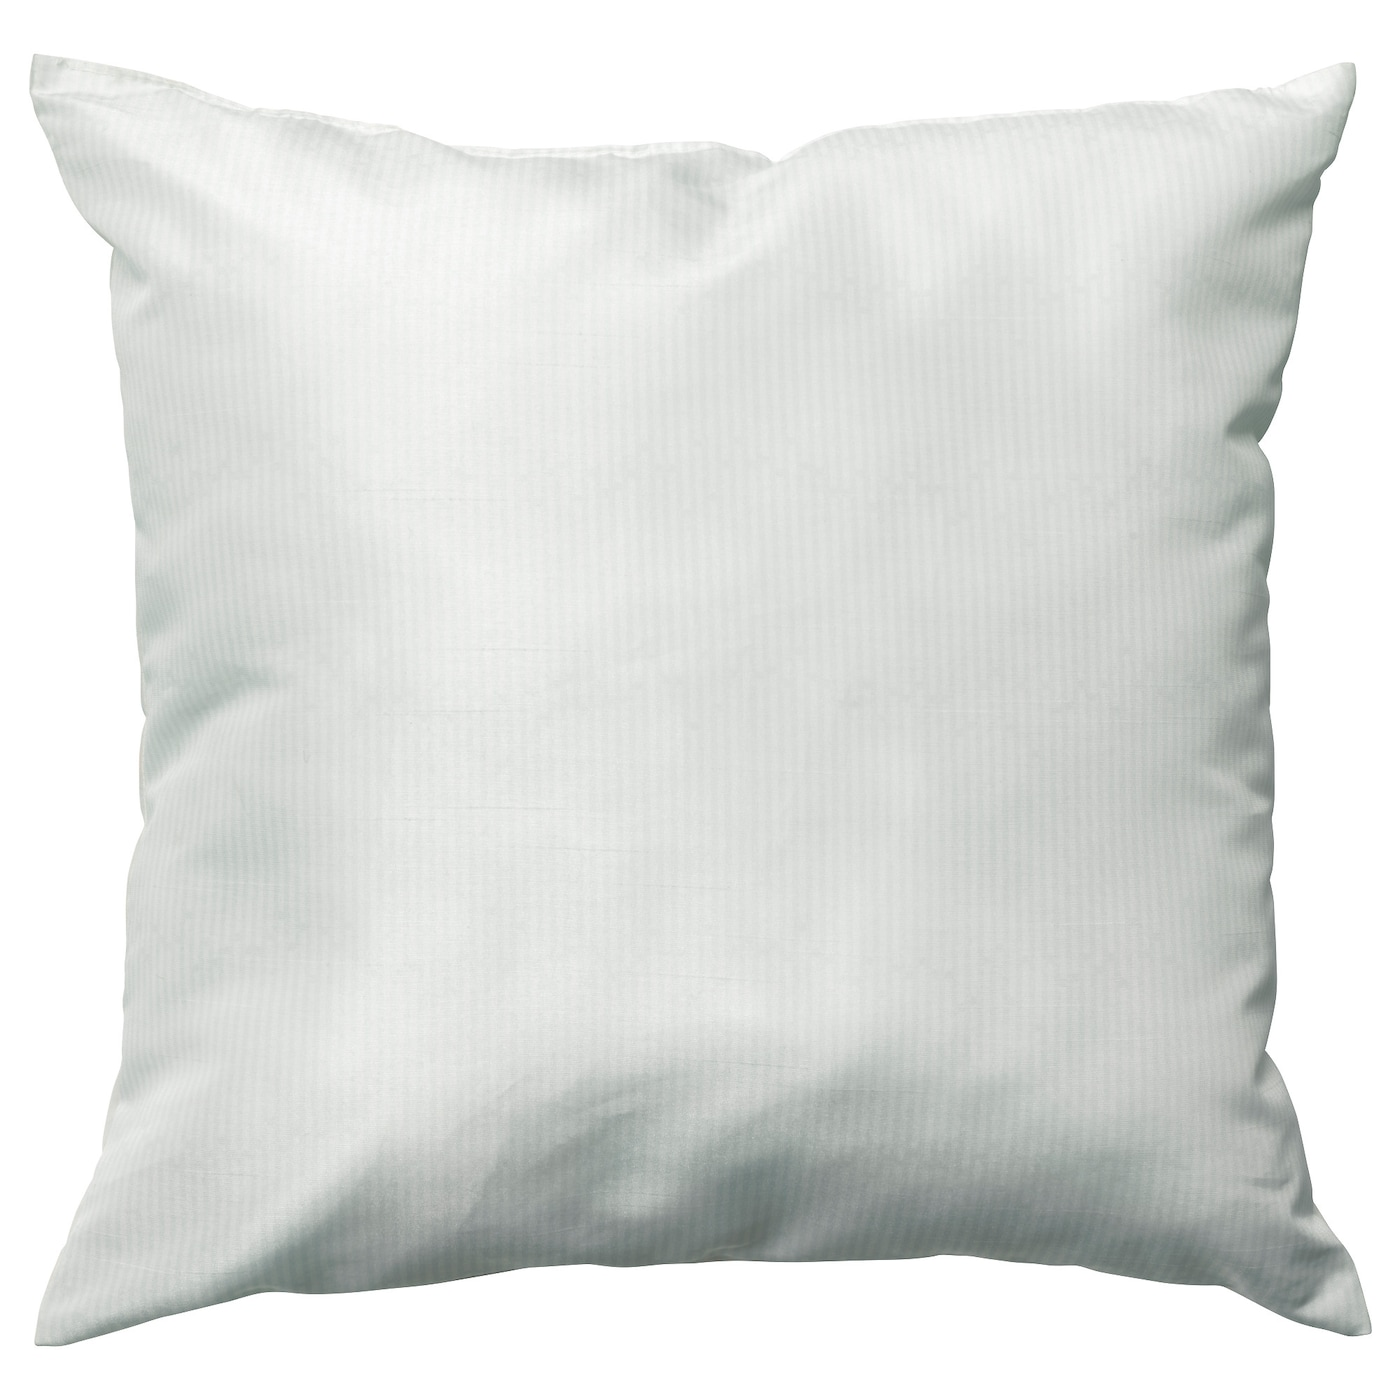 IKEA IKEA PS 2017 cushion The polyester filling holds its shape and gives your body soft support.